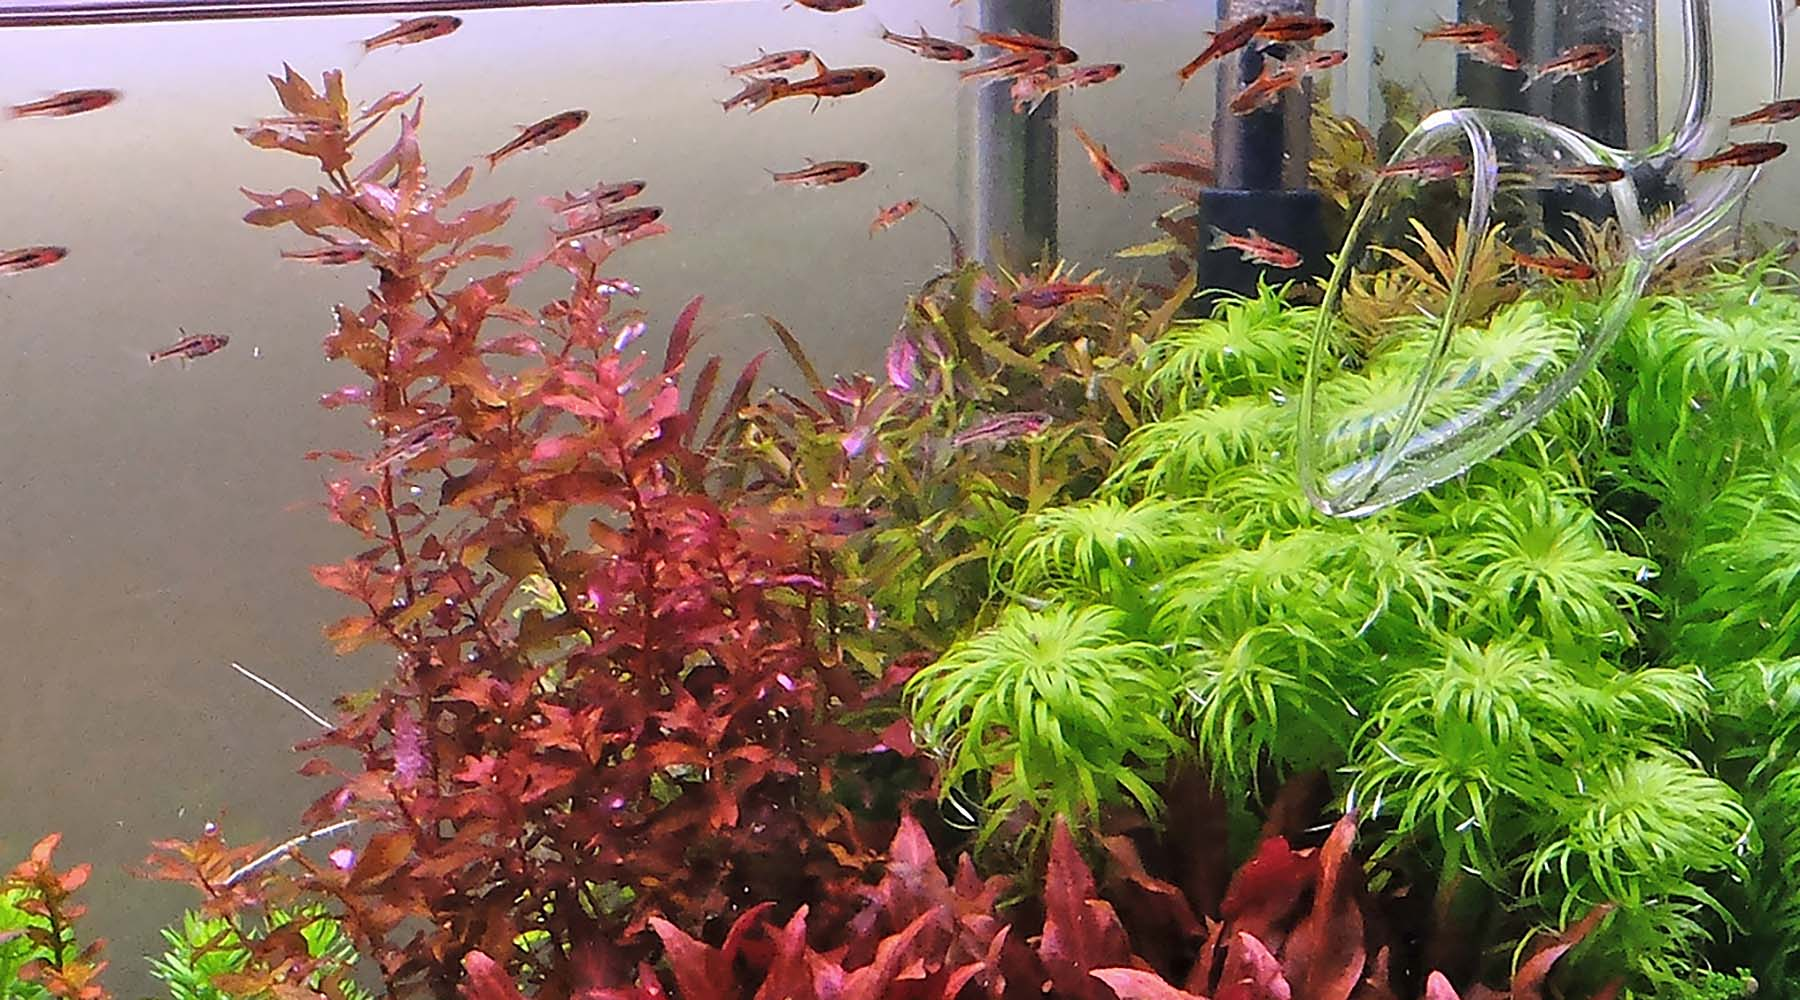 Best schooling fishes for planted tanks